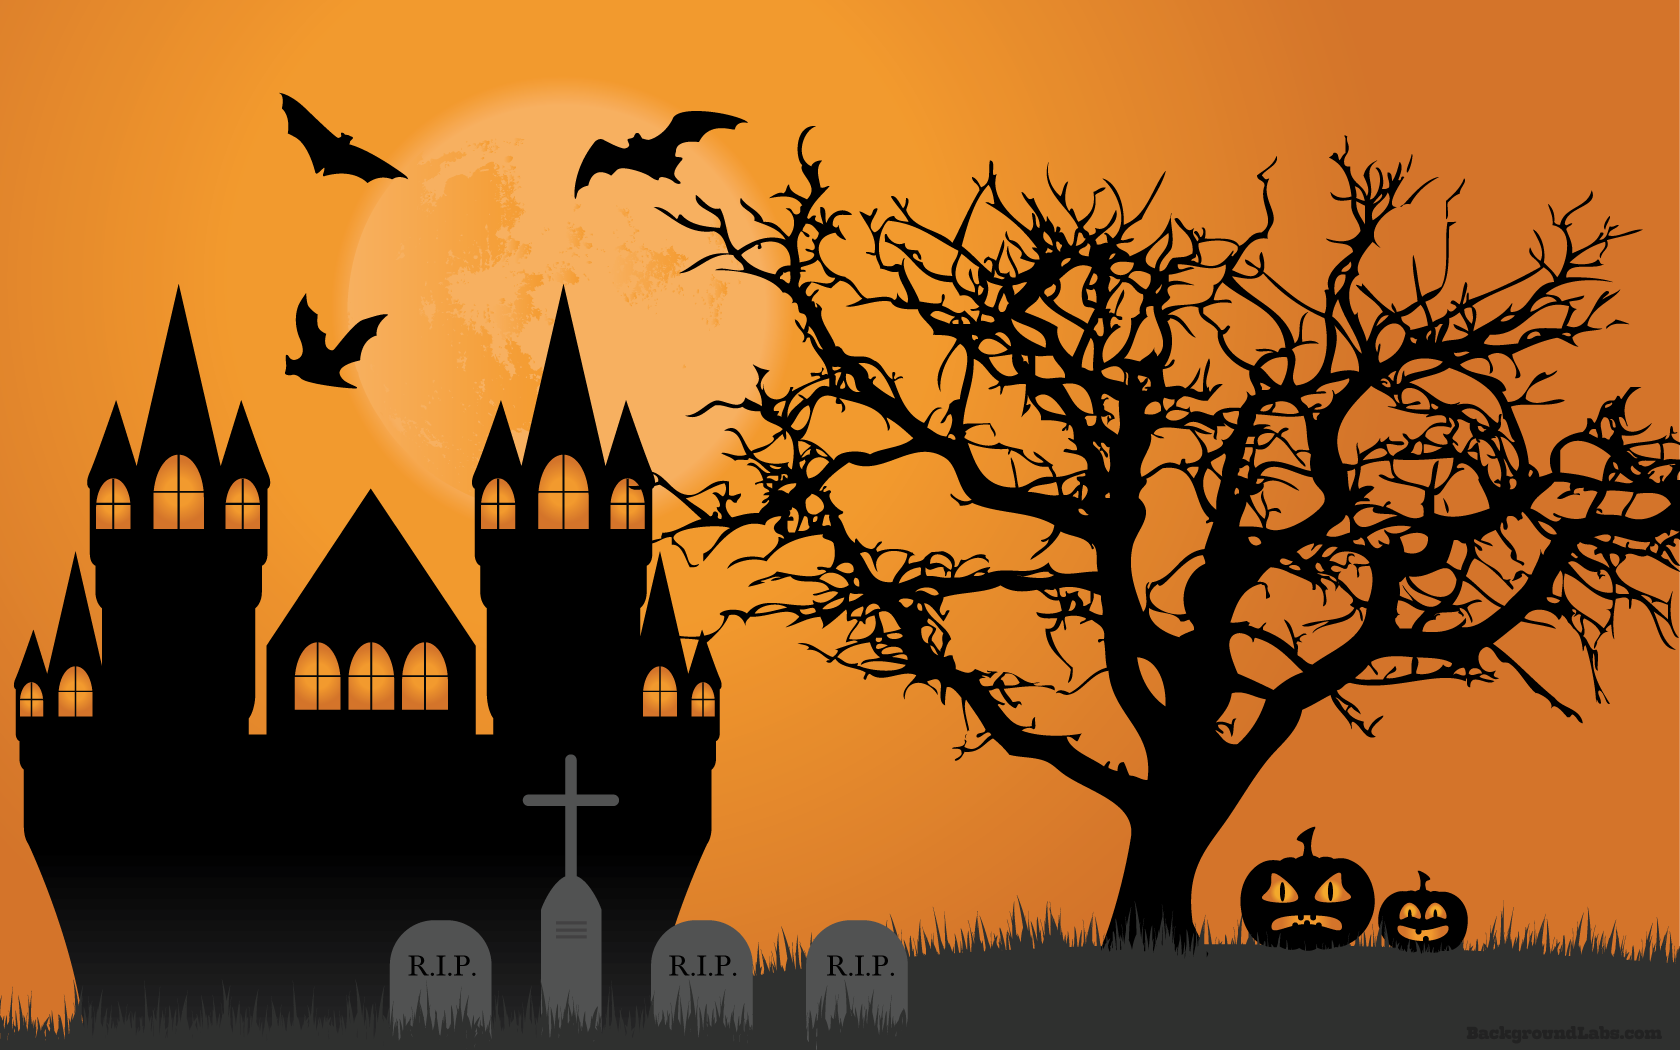 17 Best images about Halloween Backgrounds & Patterns on Pinterest ...